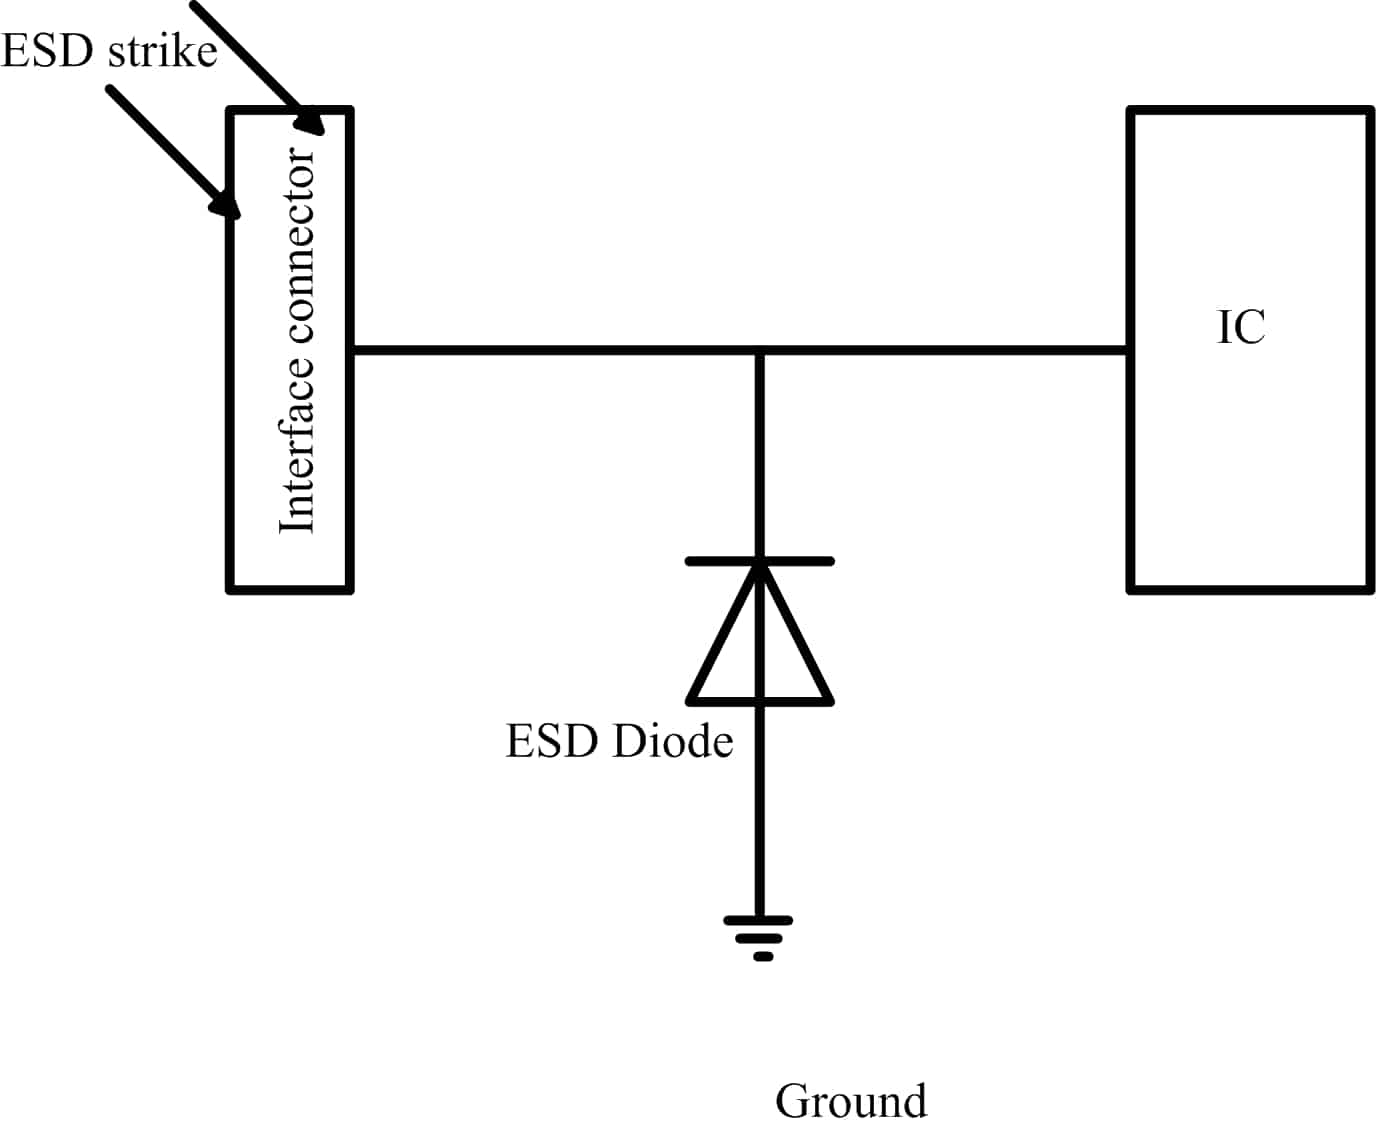 ESD diode protects ICs from ESD strike